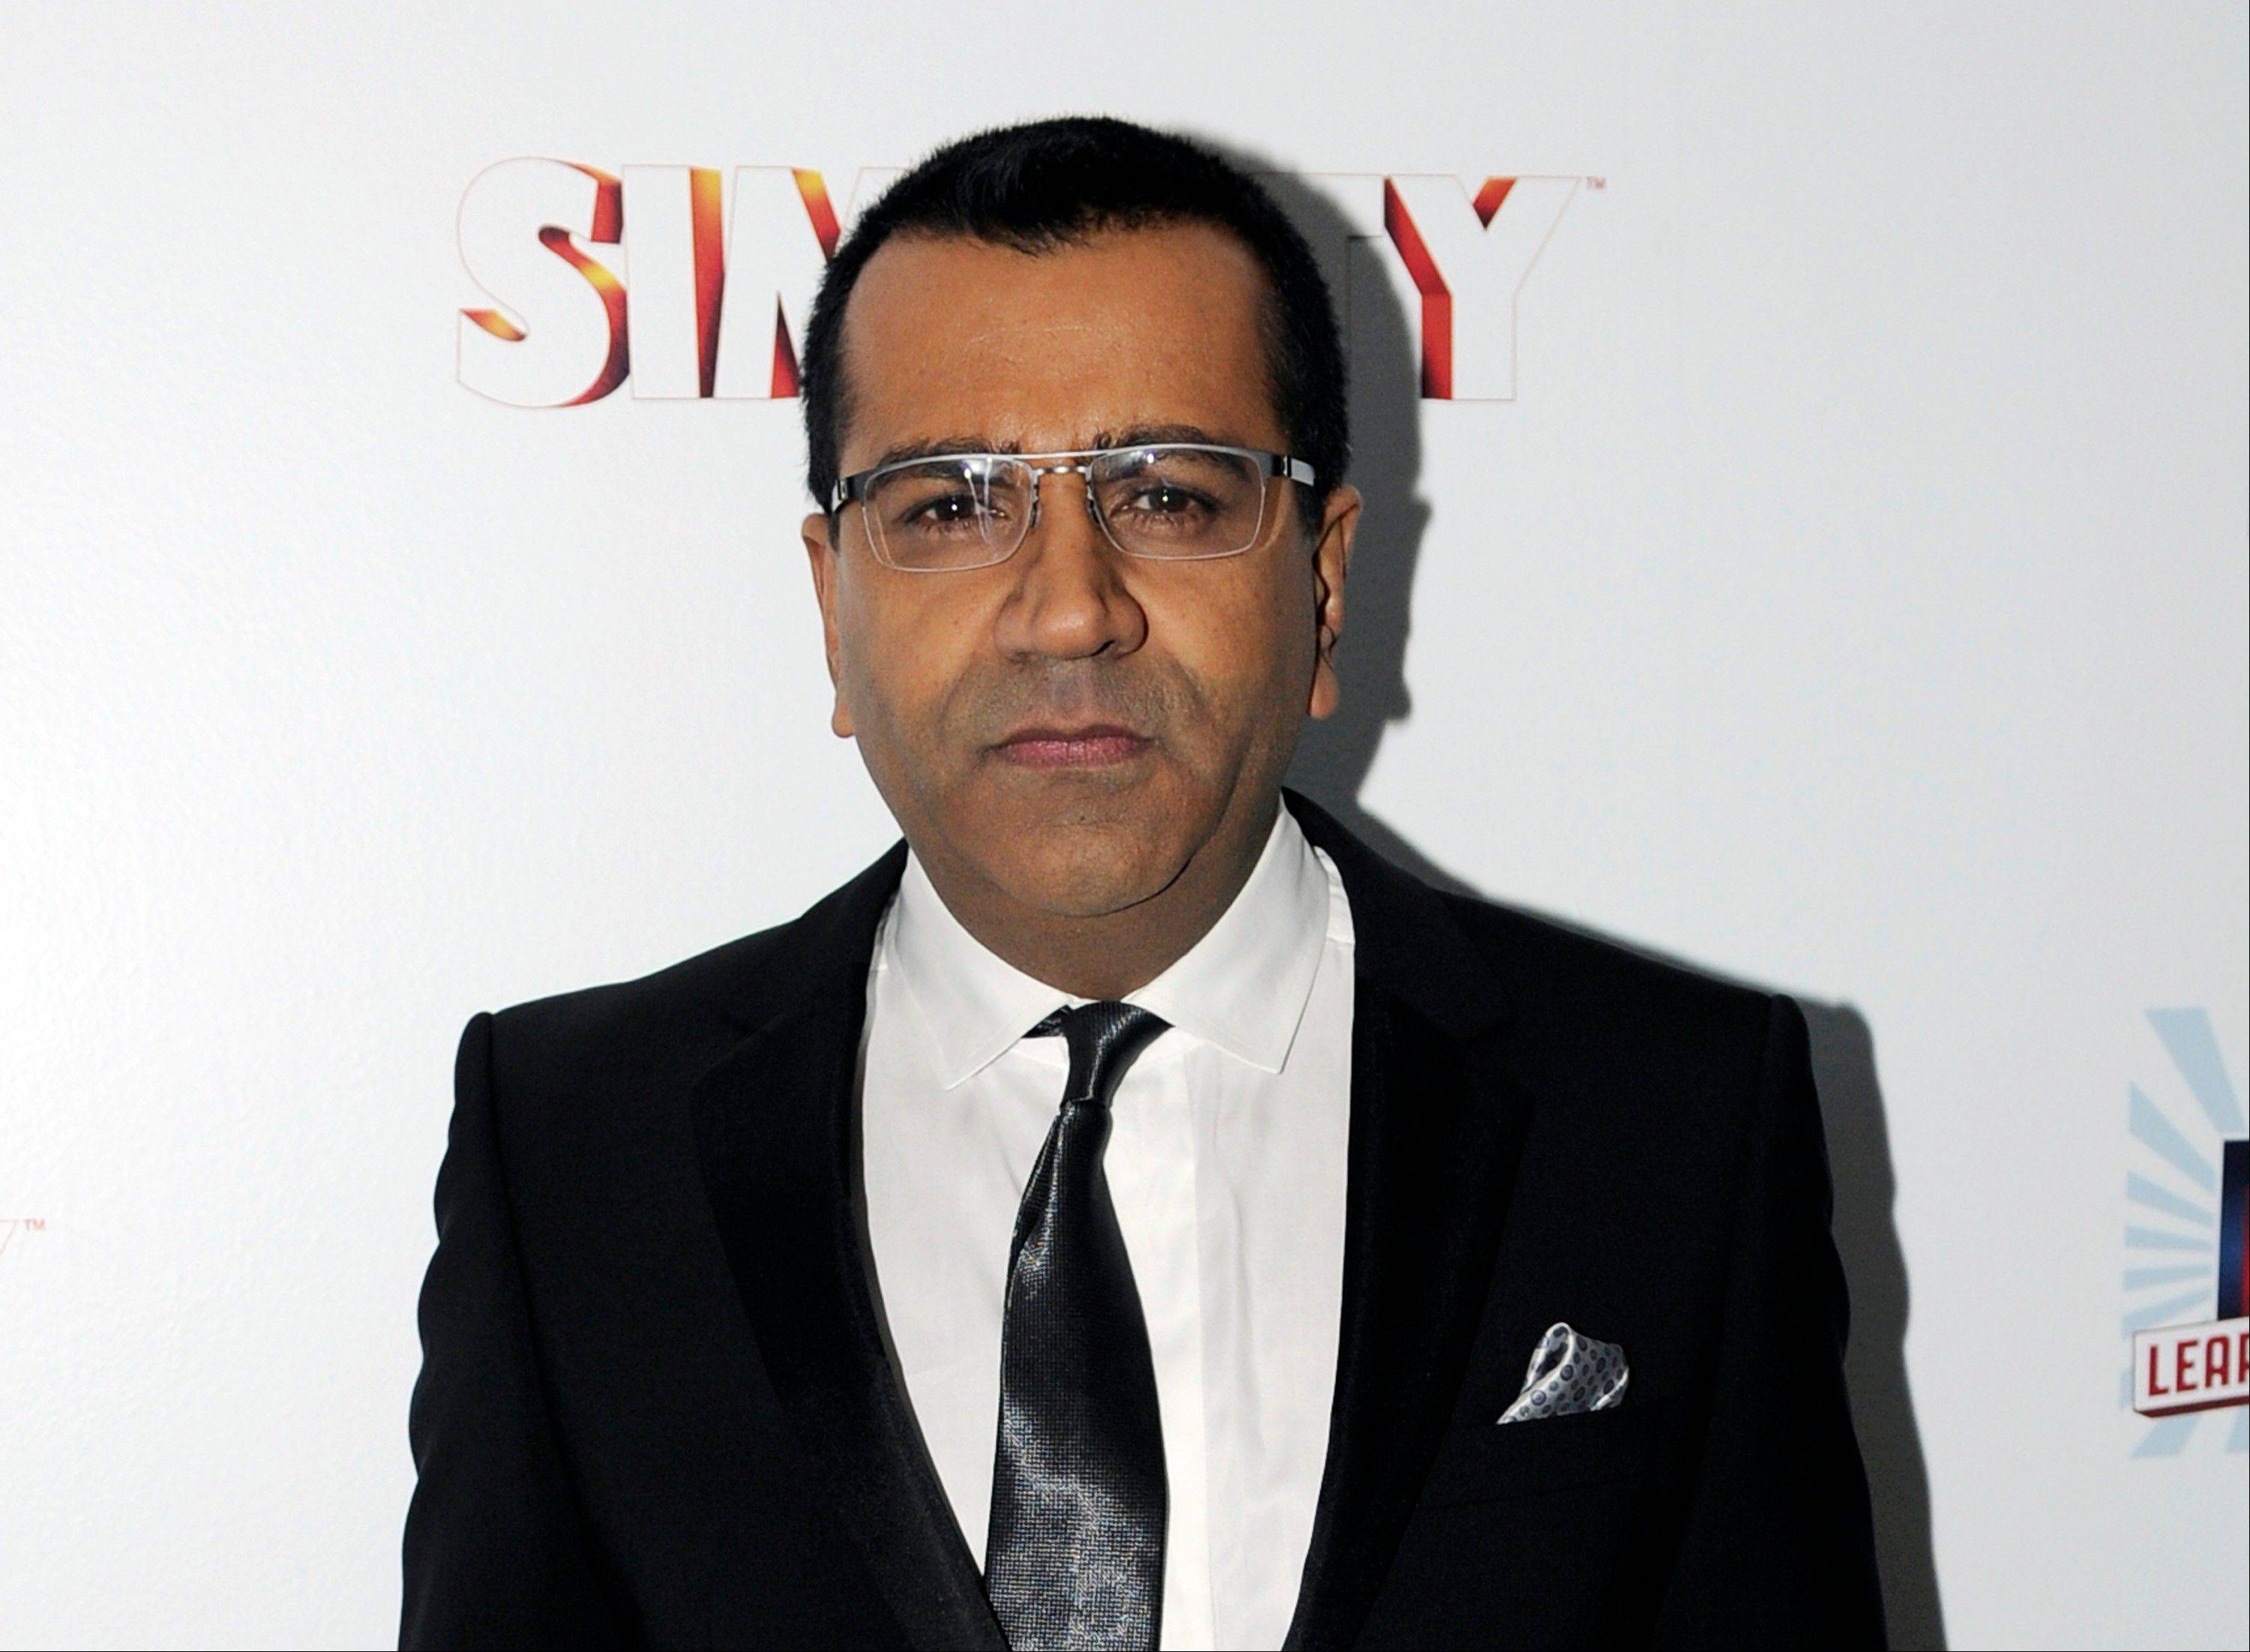 MSNBC was not saying Tuesday, Nov. 19, 2013, whether disciplinary action is planned against Martin Bashir, who has apologized for what he called deeply offensive comments he made about Sarah Palin. Bashir made his original commentary on Friday and apologized on Monday.